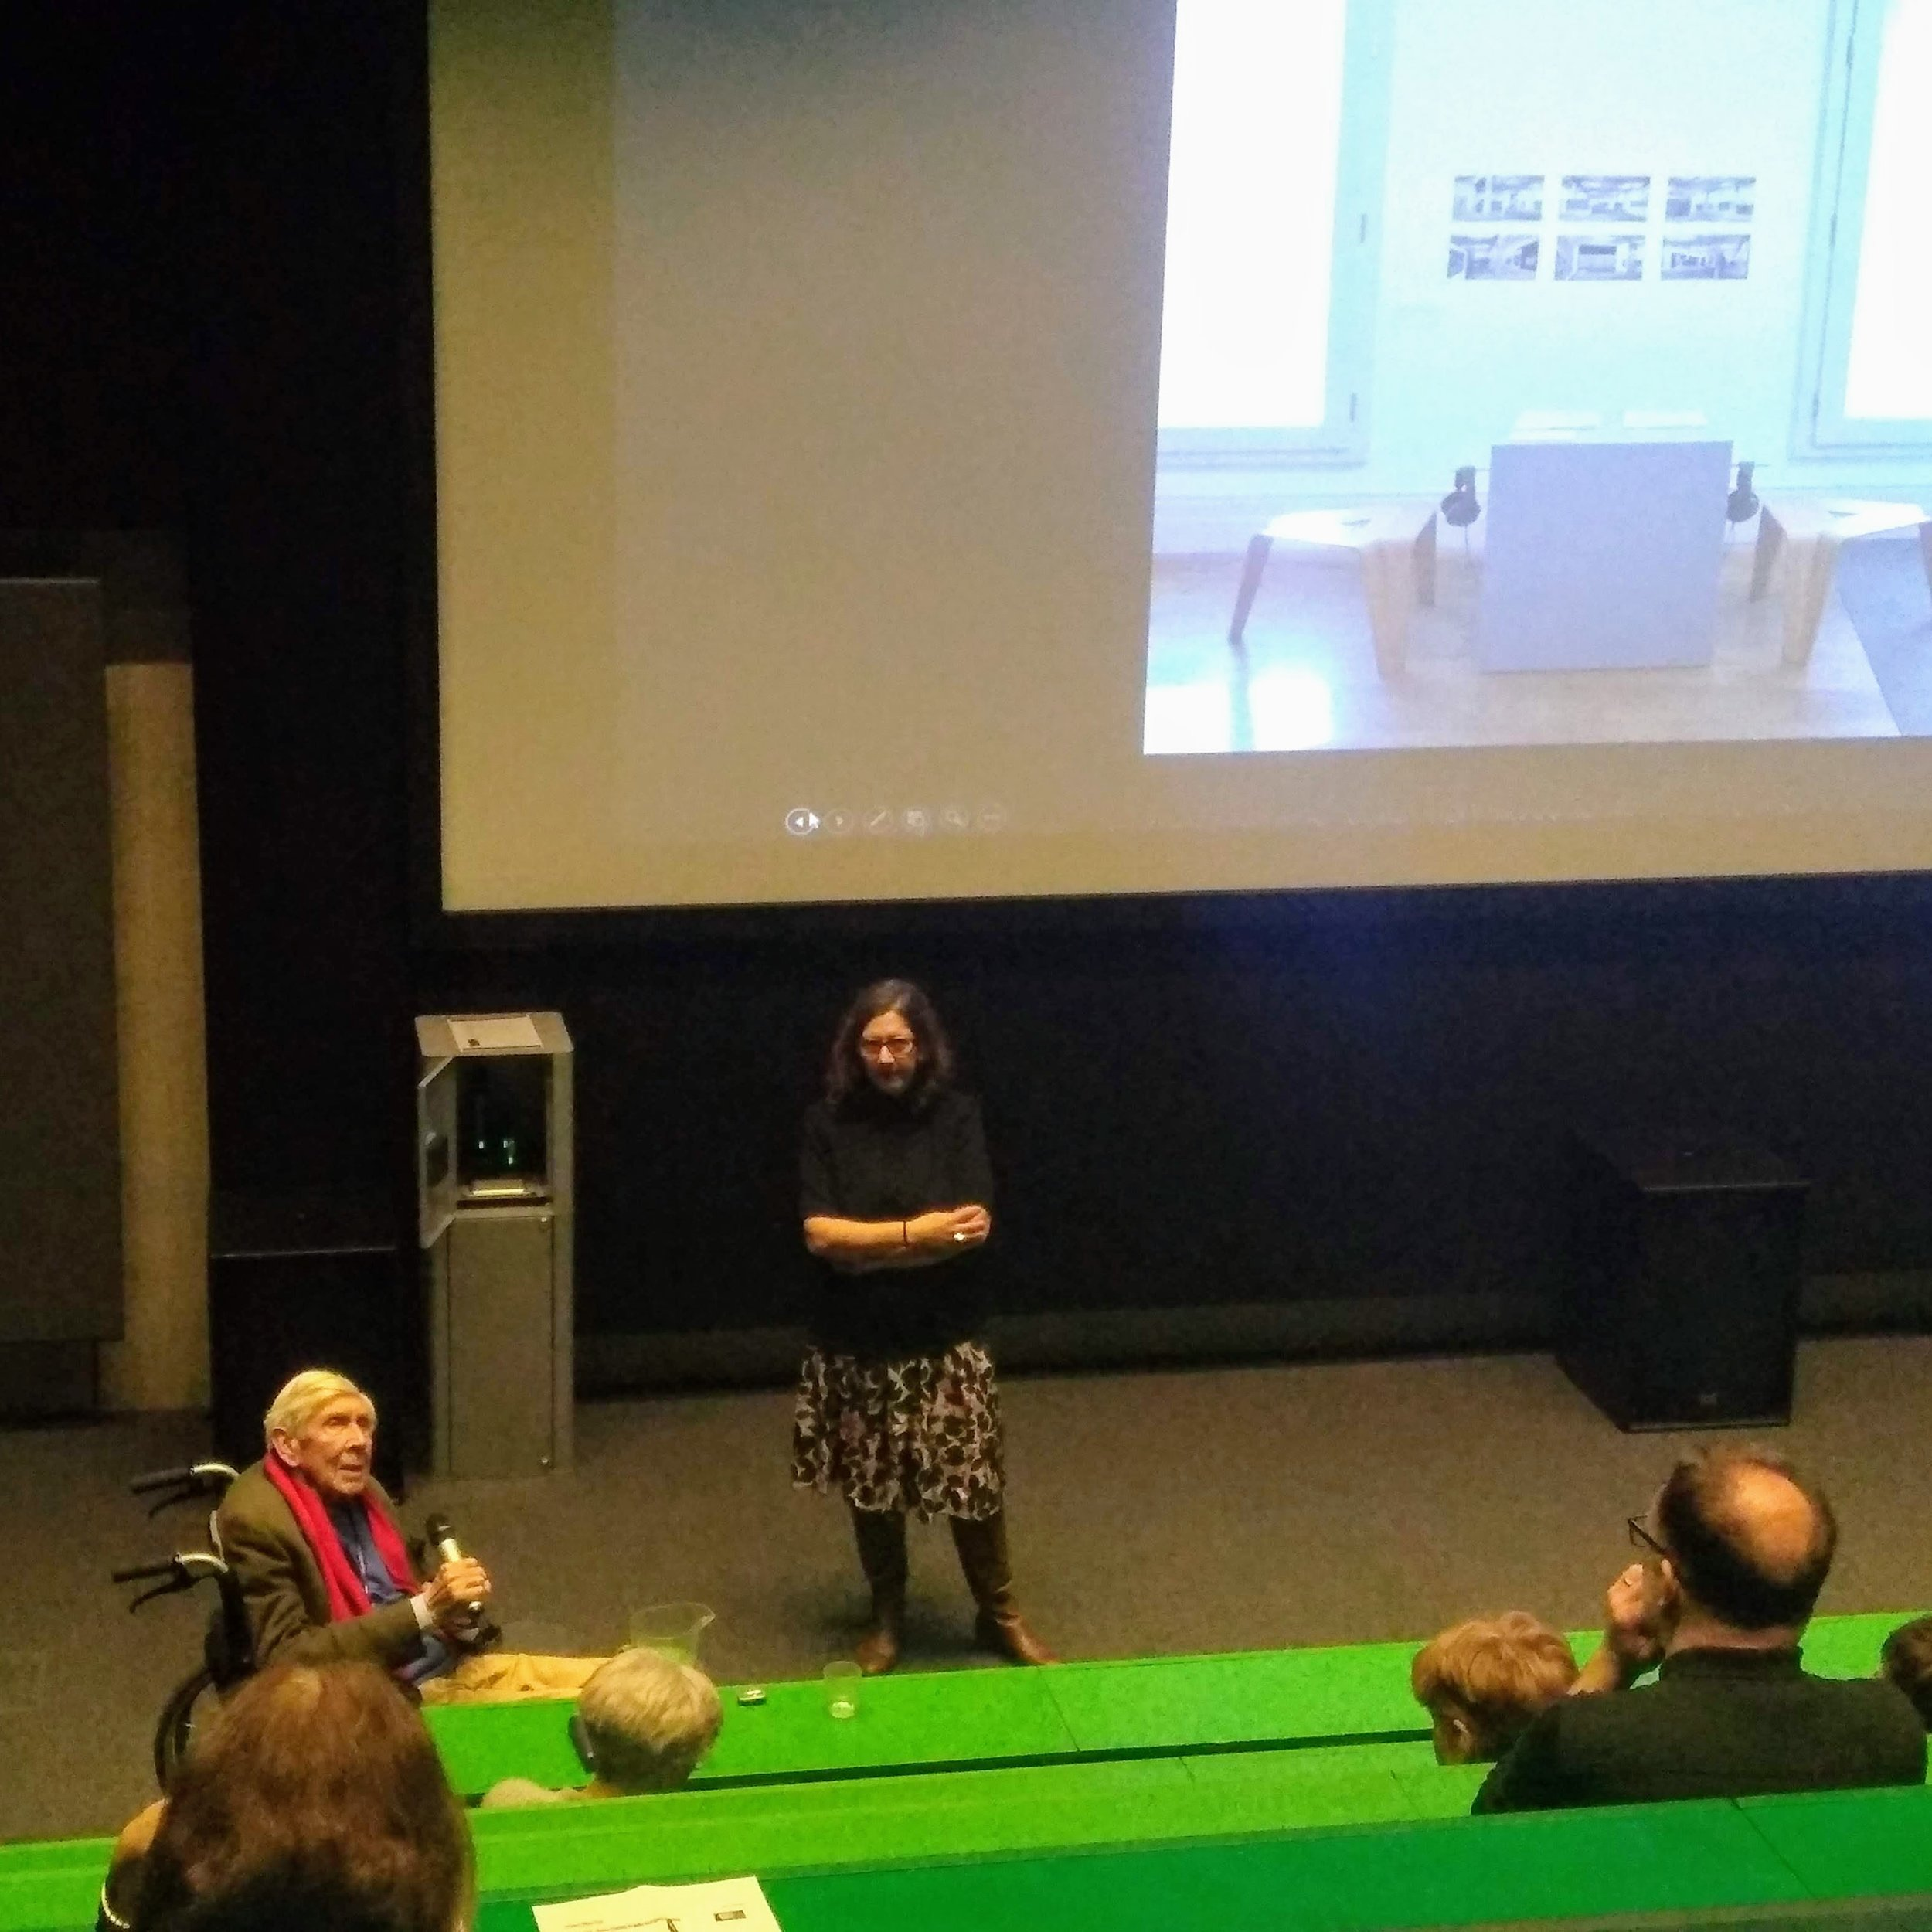 Picture from the talk with Trevor Dannatt and Nayia Yiakoumaki